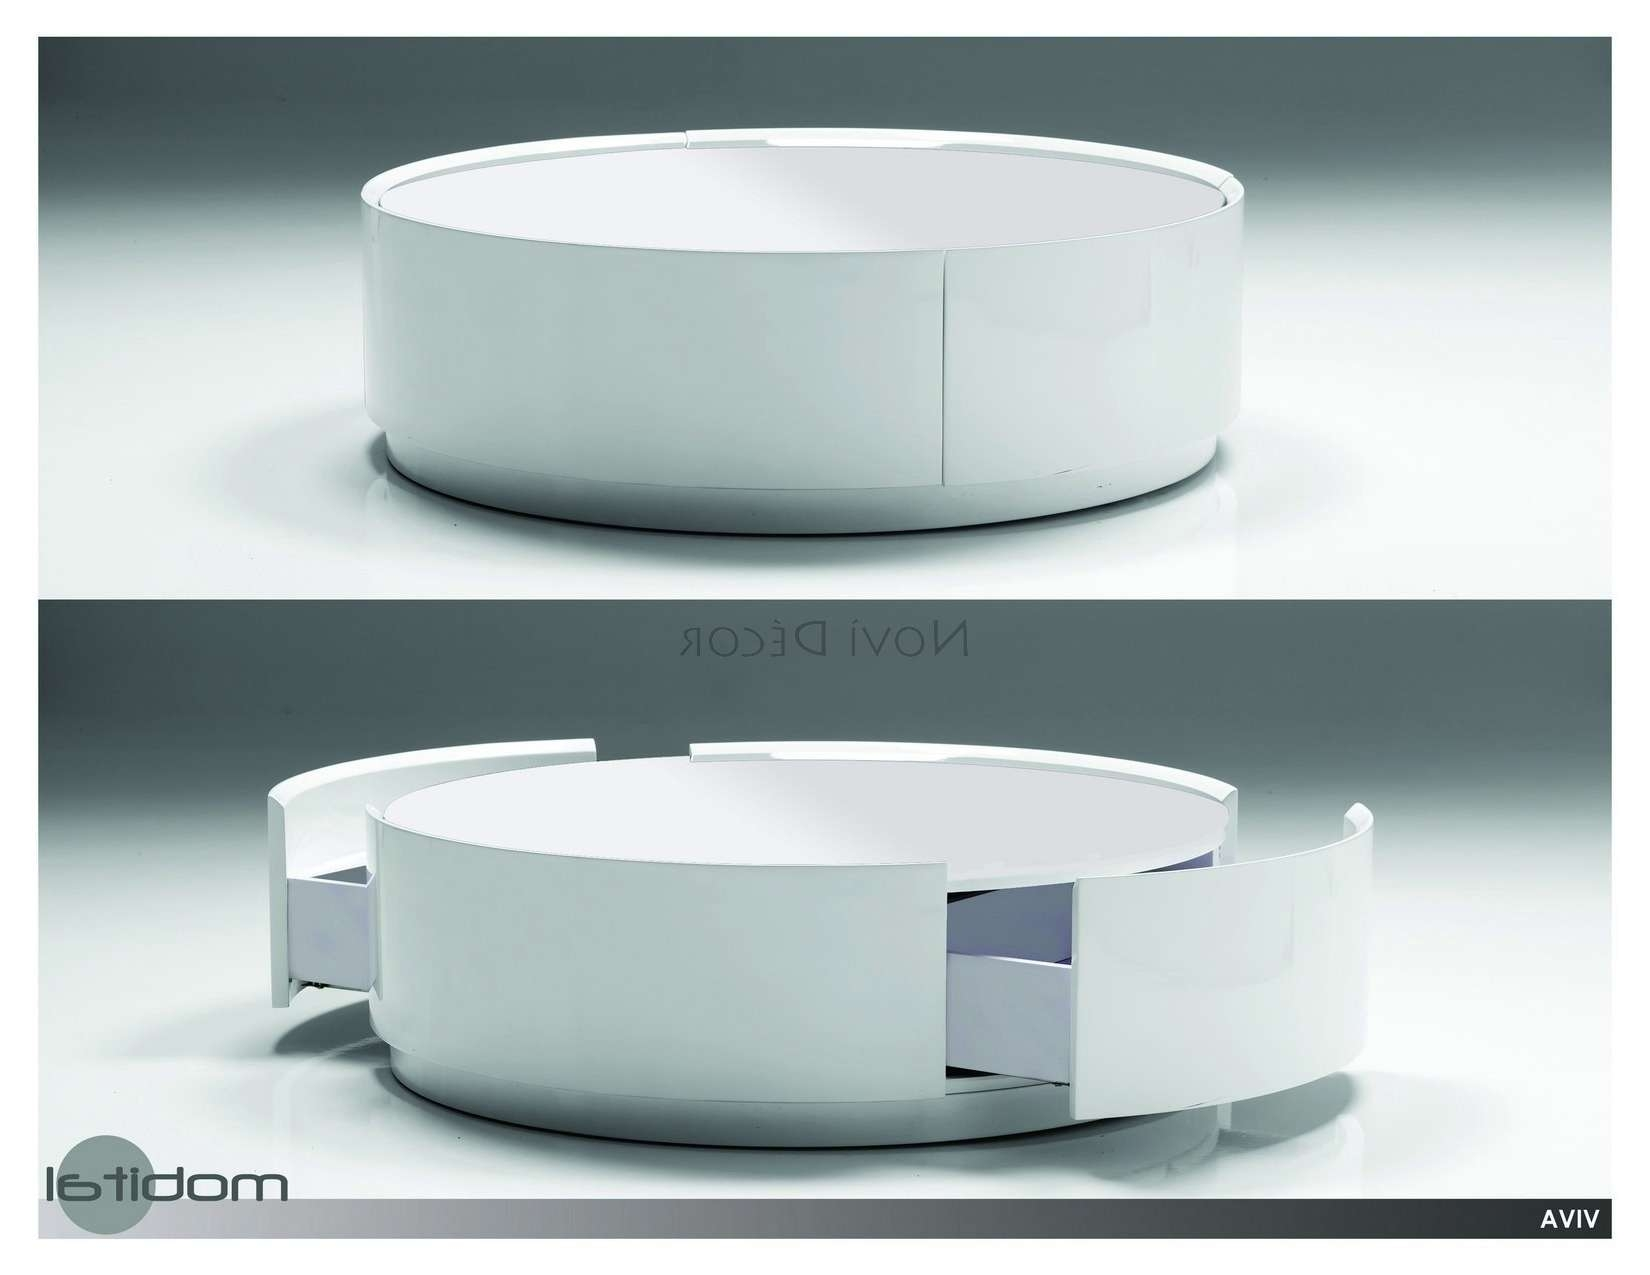 Amazing Round Coffee Tables With Storage Pics Ideas – Tikspor For Most Popular Circular Coffee Tables With Storage (Gallery 11 of 20)